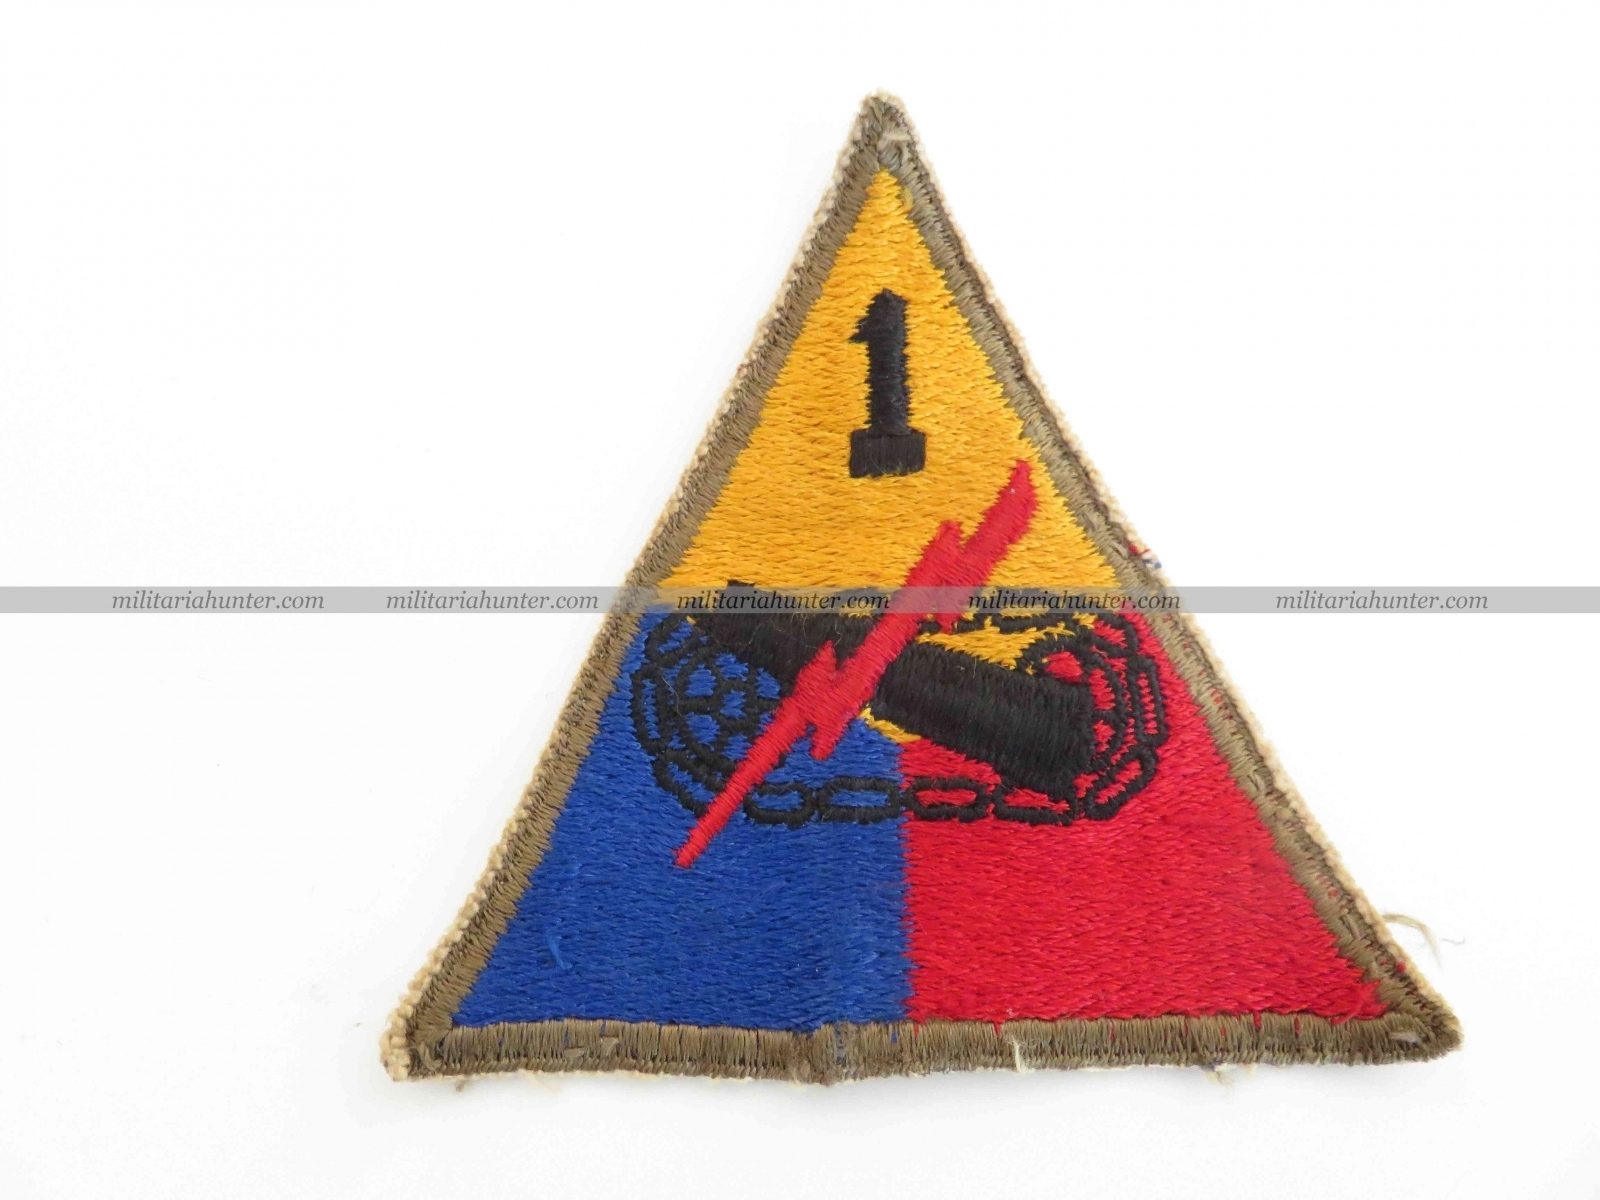 militaria : Original ww2 1st Armoured patch